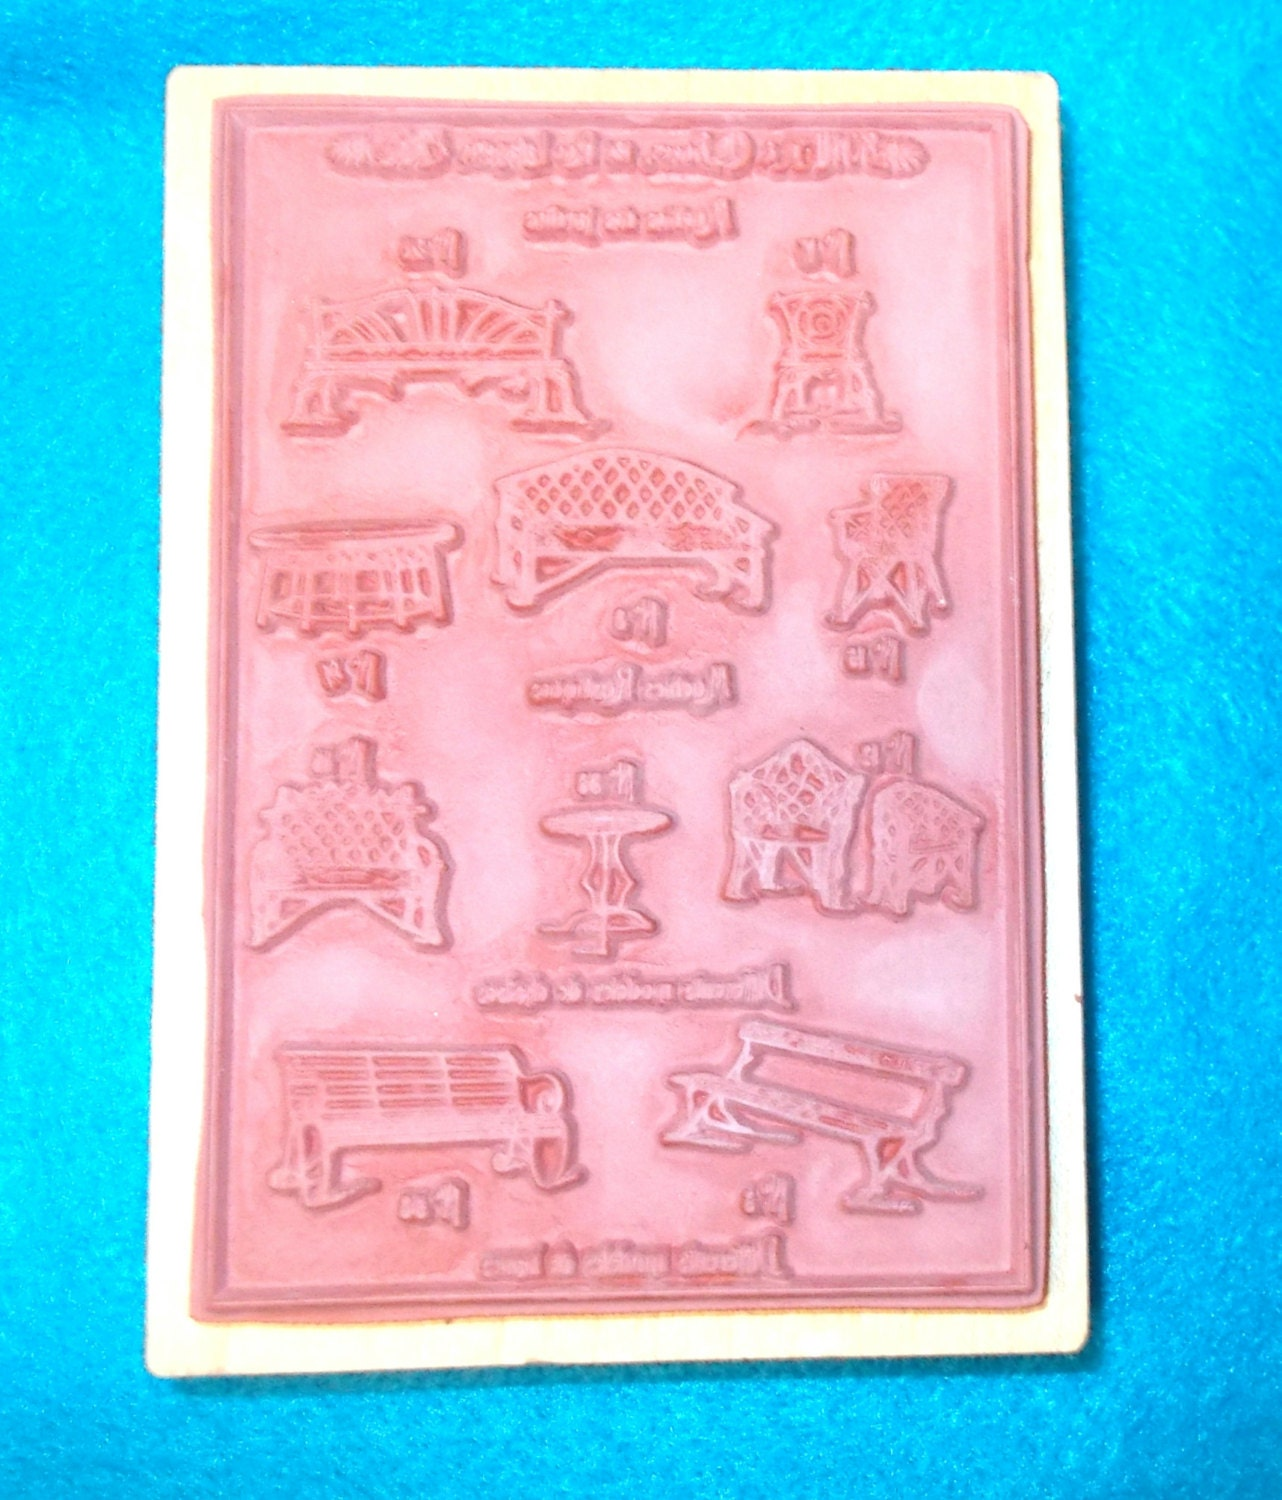 Stampa Rosa Tin Can Mail Rubber Stamp Paris Furniture  # Muebles Lafayet